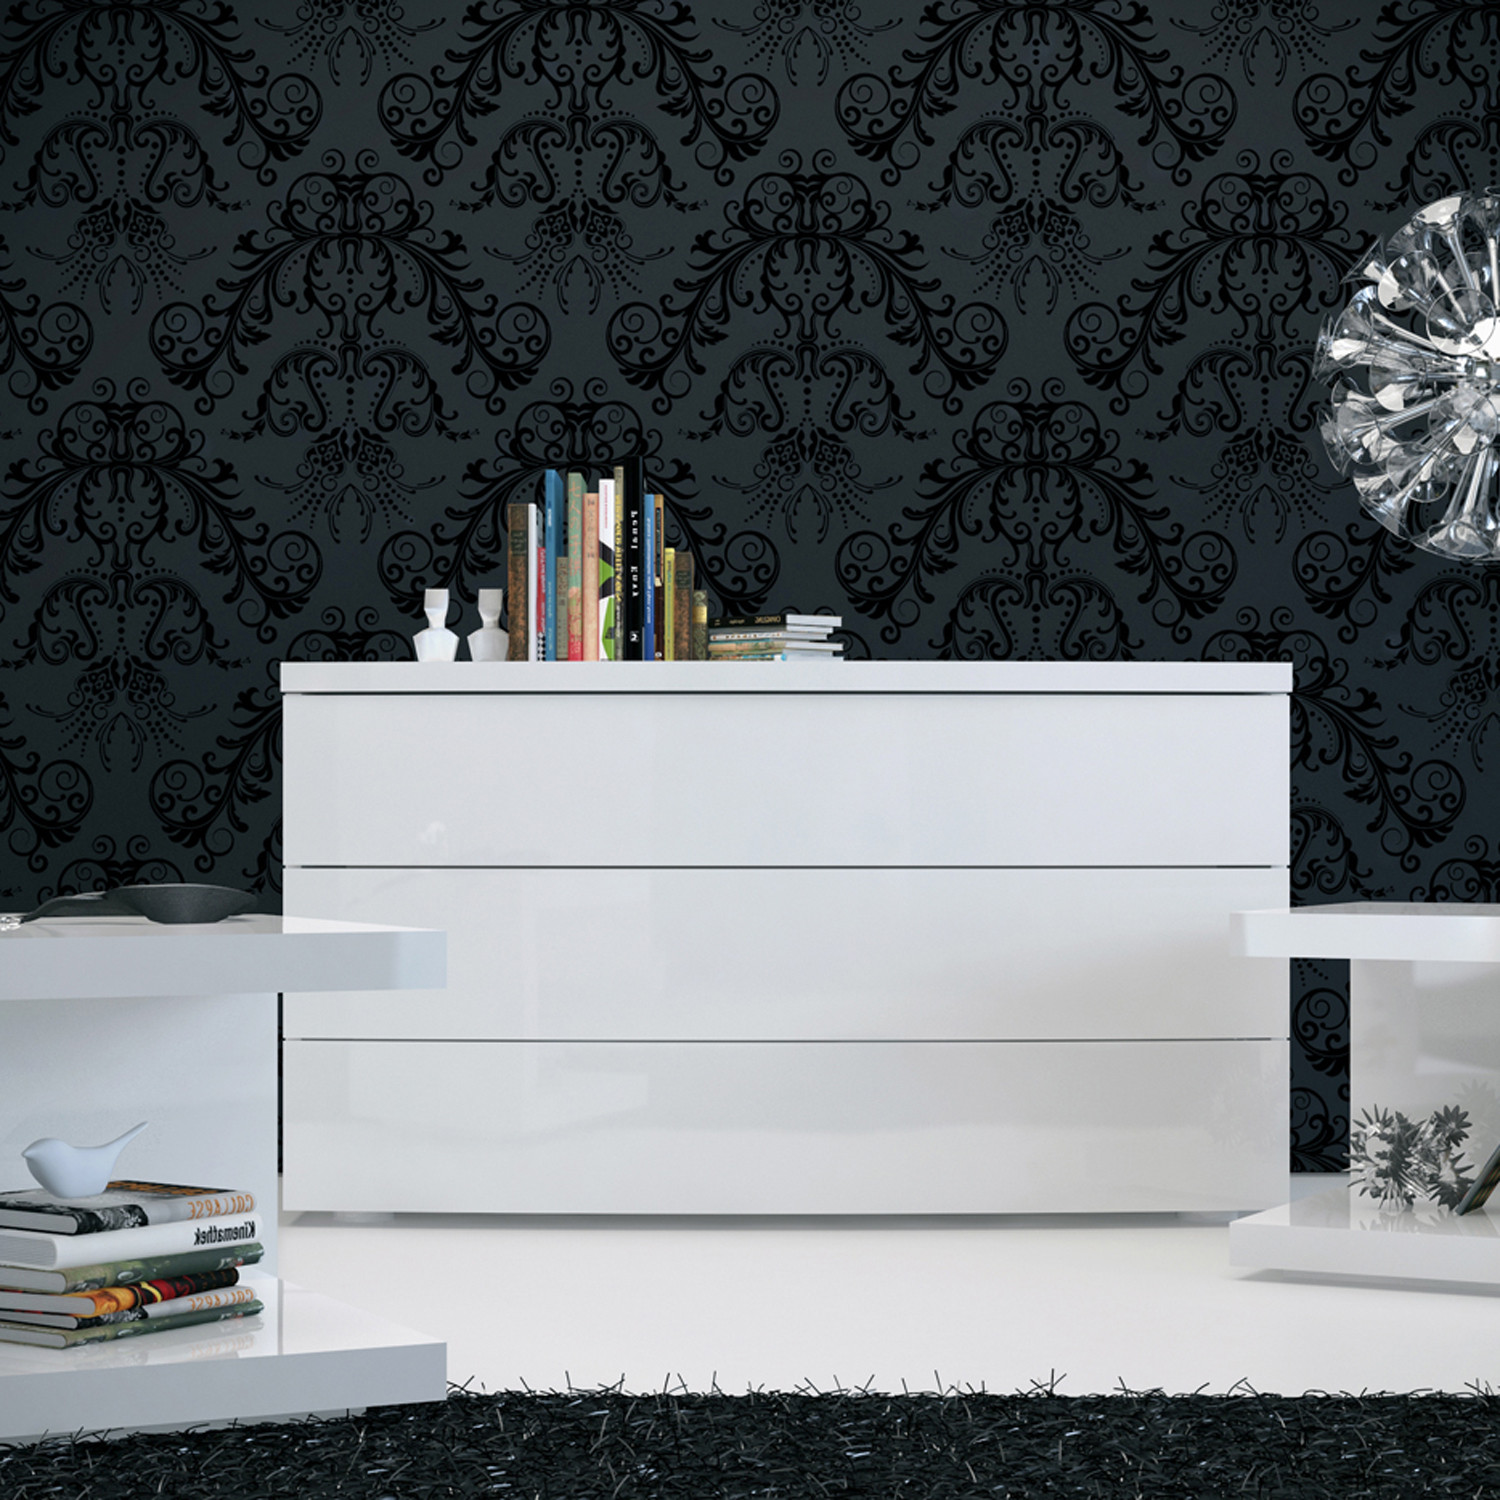 https://www.touchofmodern.com/sales/modloft-bedroom-a1508431-2a5a-4fd9-a661-62a39892e635/ludlow-dresser-white-lacquer?share_invite_token=WQ3PD6V0